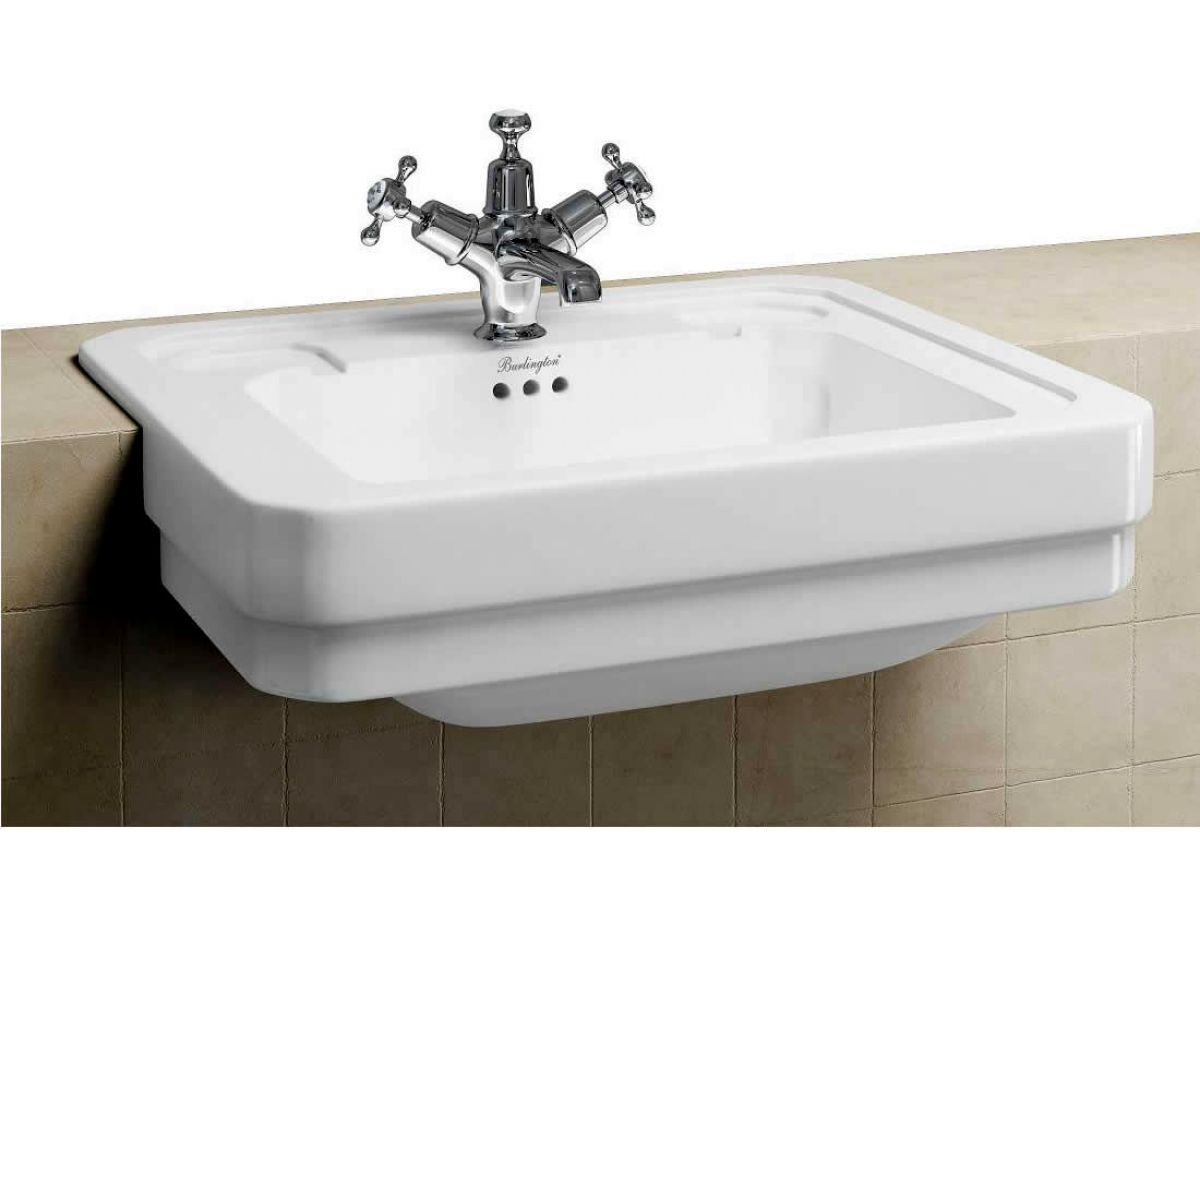 ... recessed basin home bathrooms basins and sinks recessed semi recessed